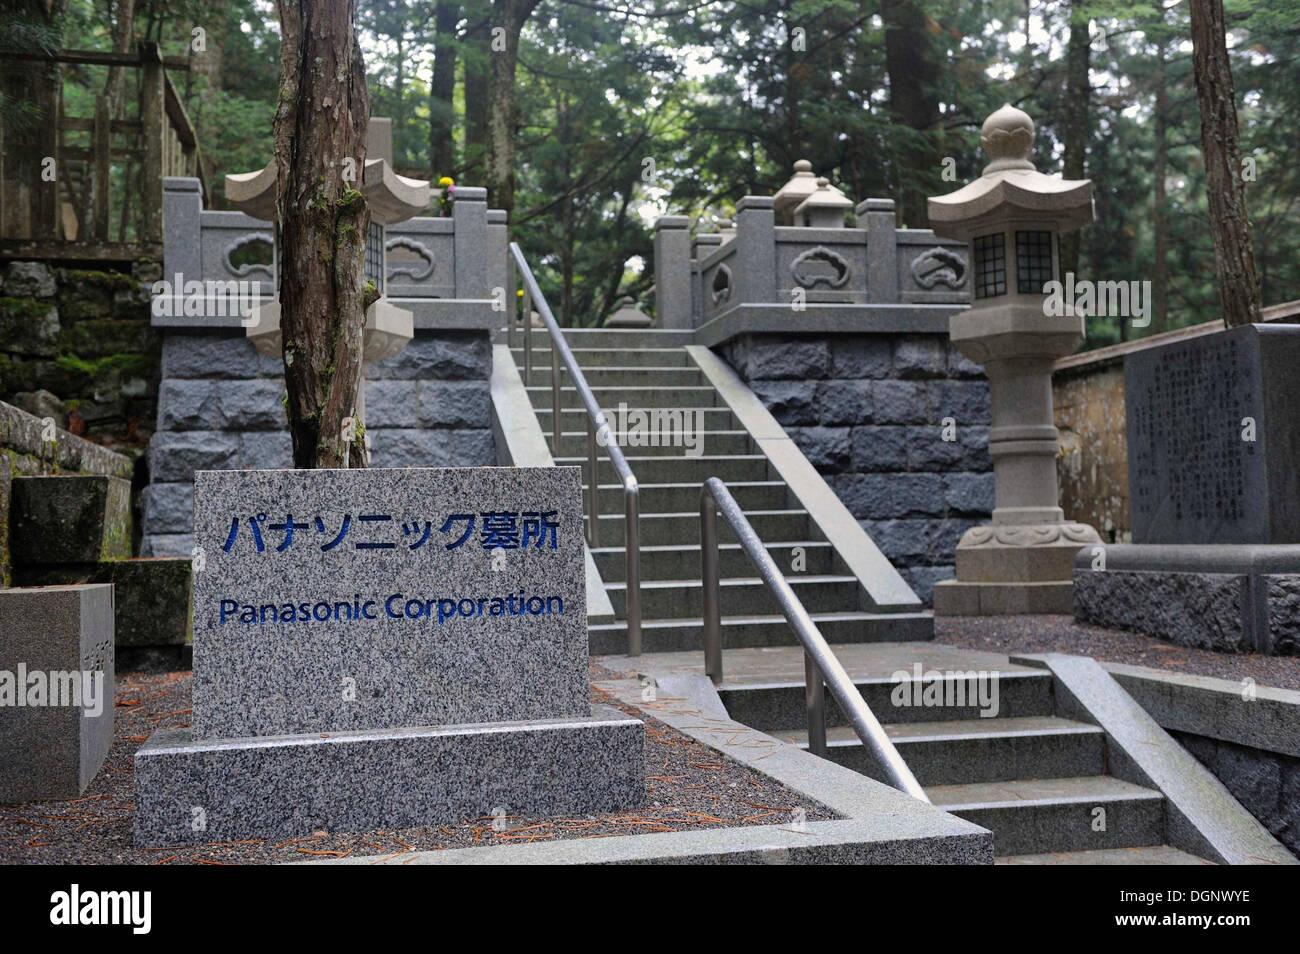 Gravesite of the company Panasonic in Oku-no-in, on the cemetery of Koya-san, UNESCO World Heritage Site, Wakayama, near Osaka - Stock Image